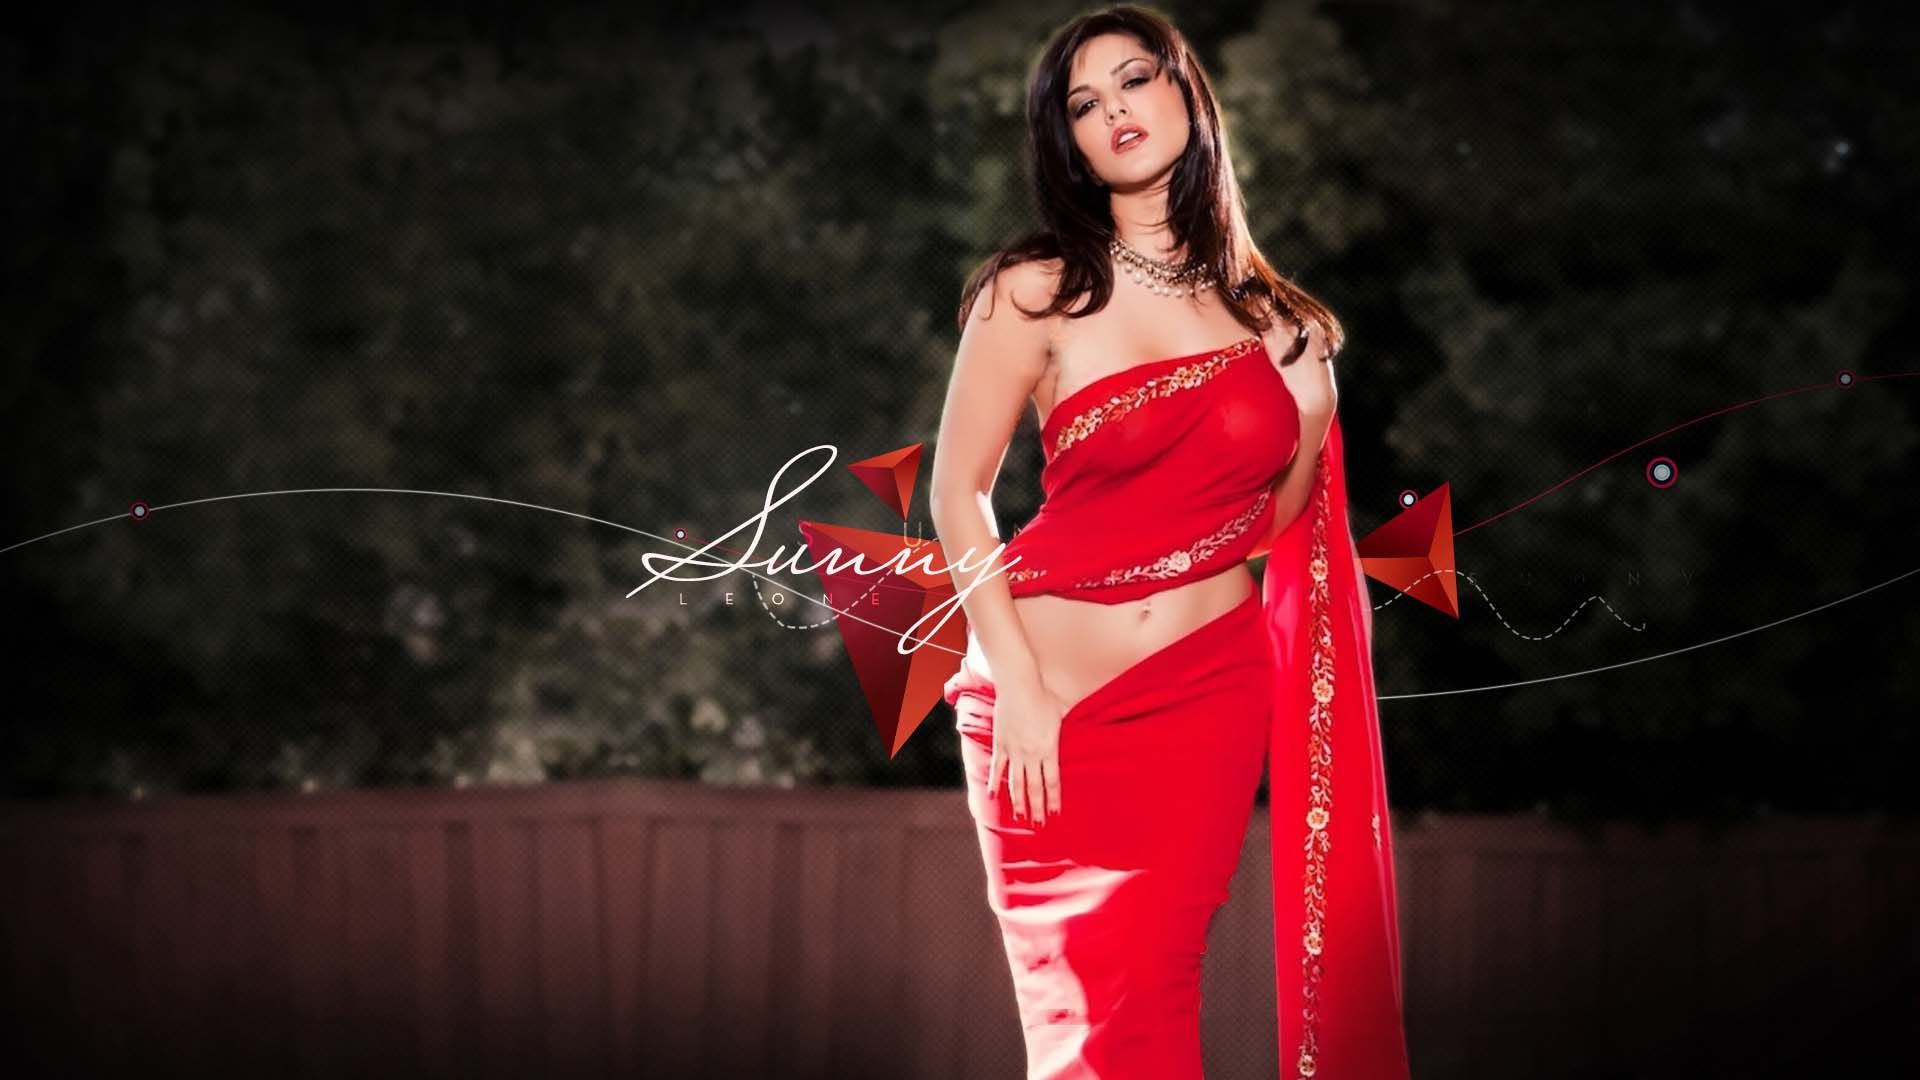 Sunny Leone Hd Wallpapers Posted By John Thompson